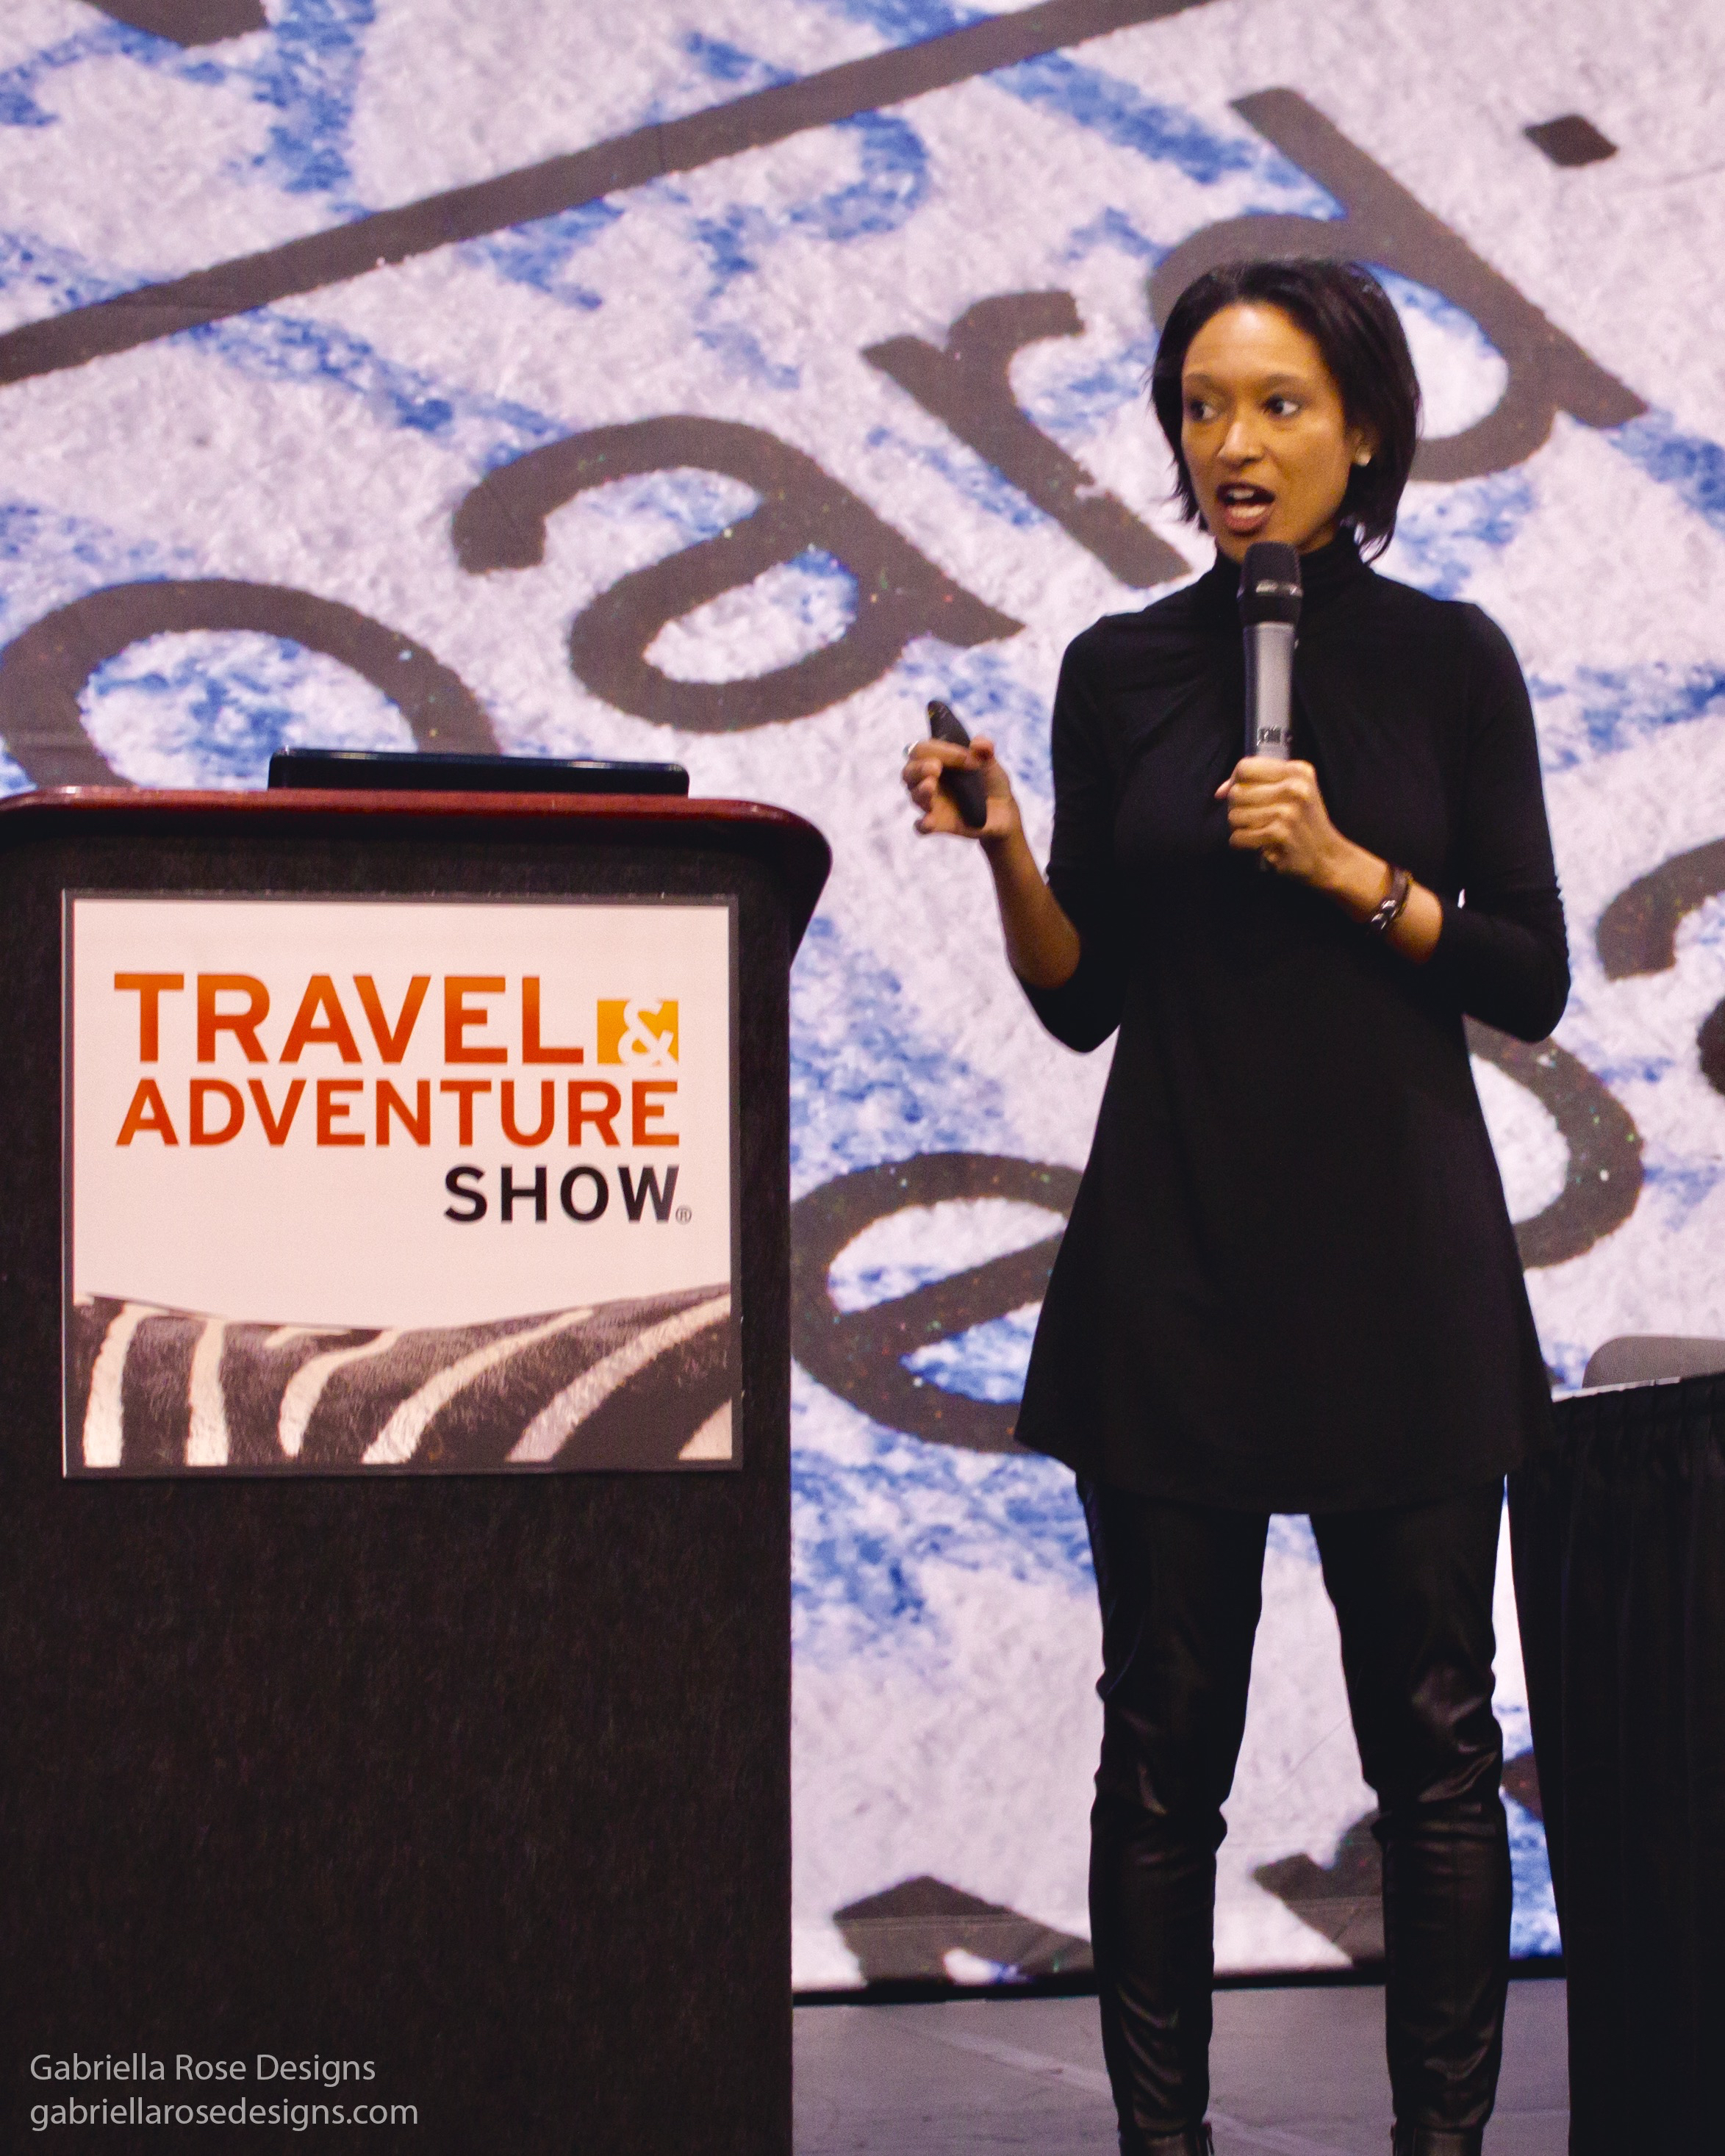 Speaking at the Travel & Adventure Show